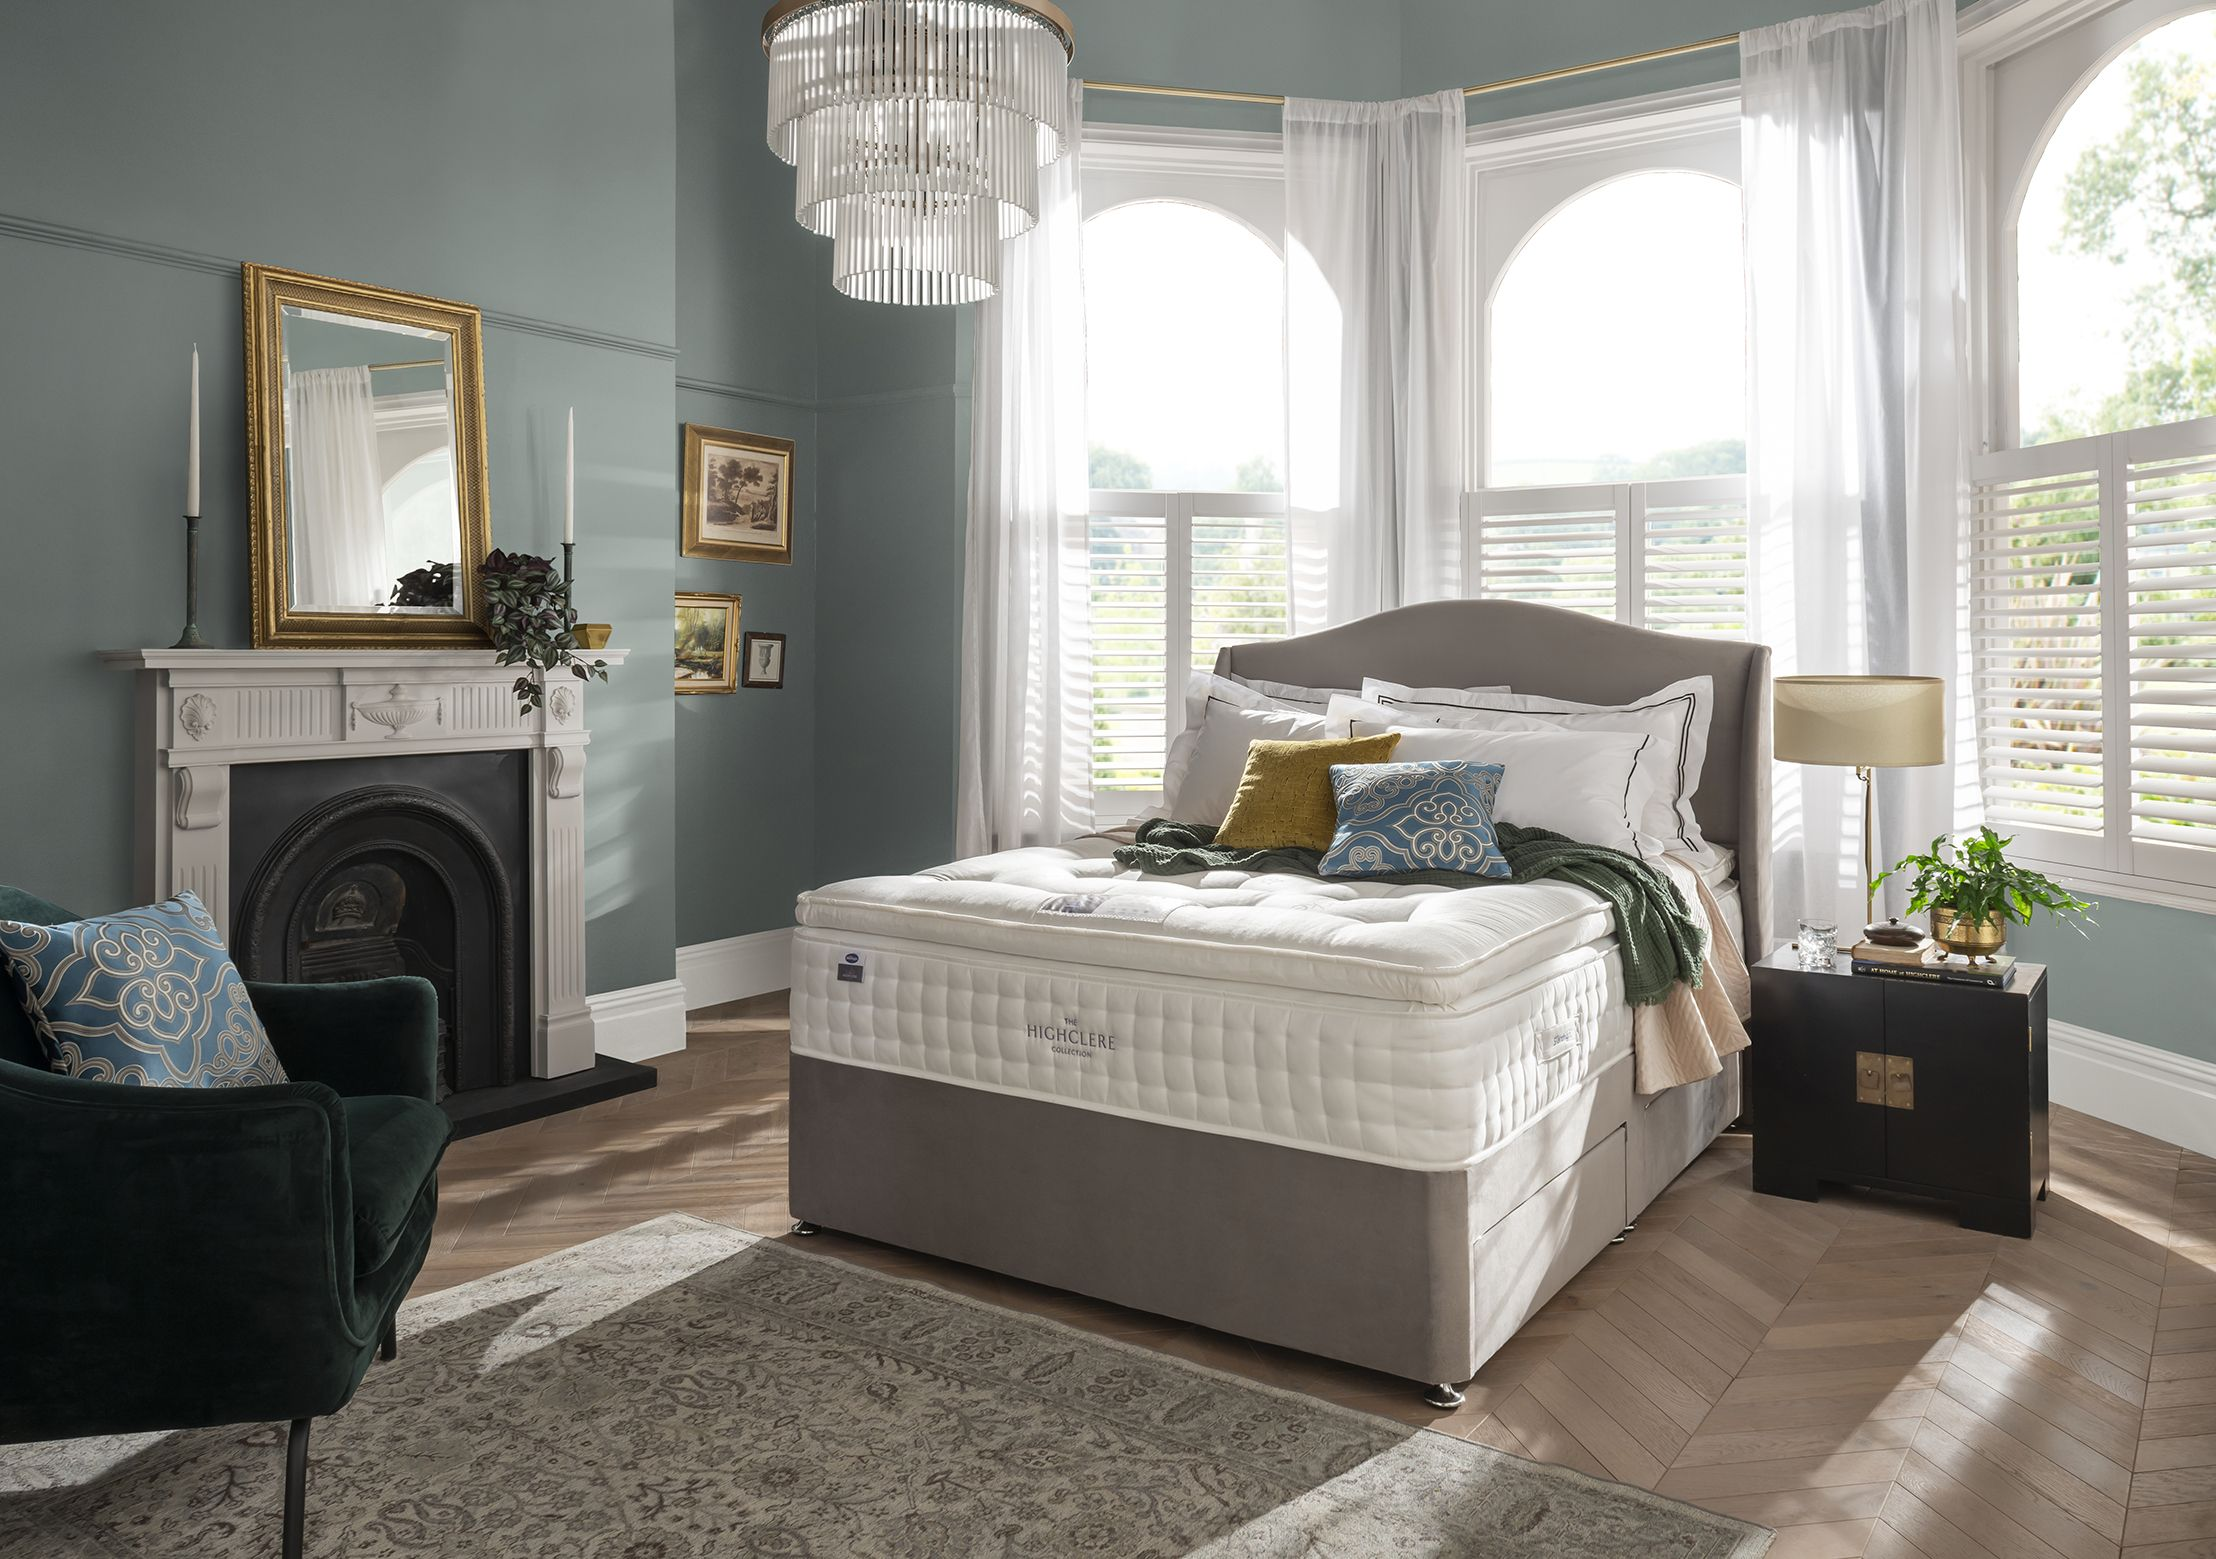 Silentnight launches mattress range inspired by Highclere Castle